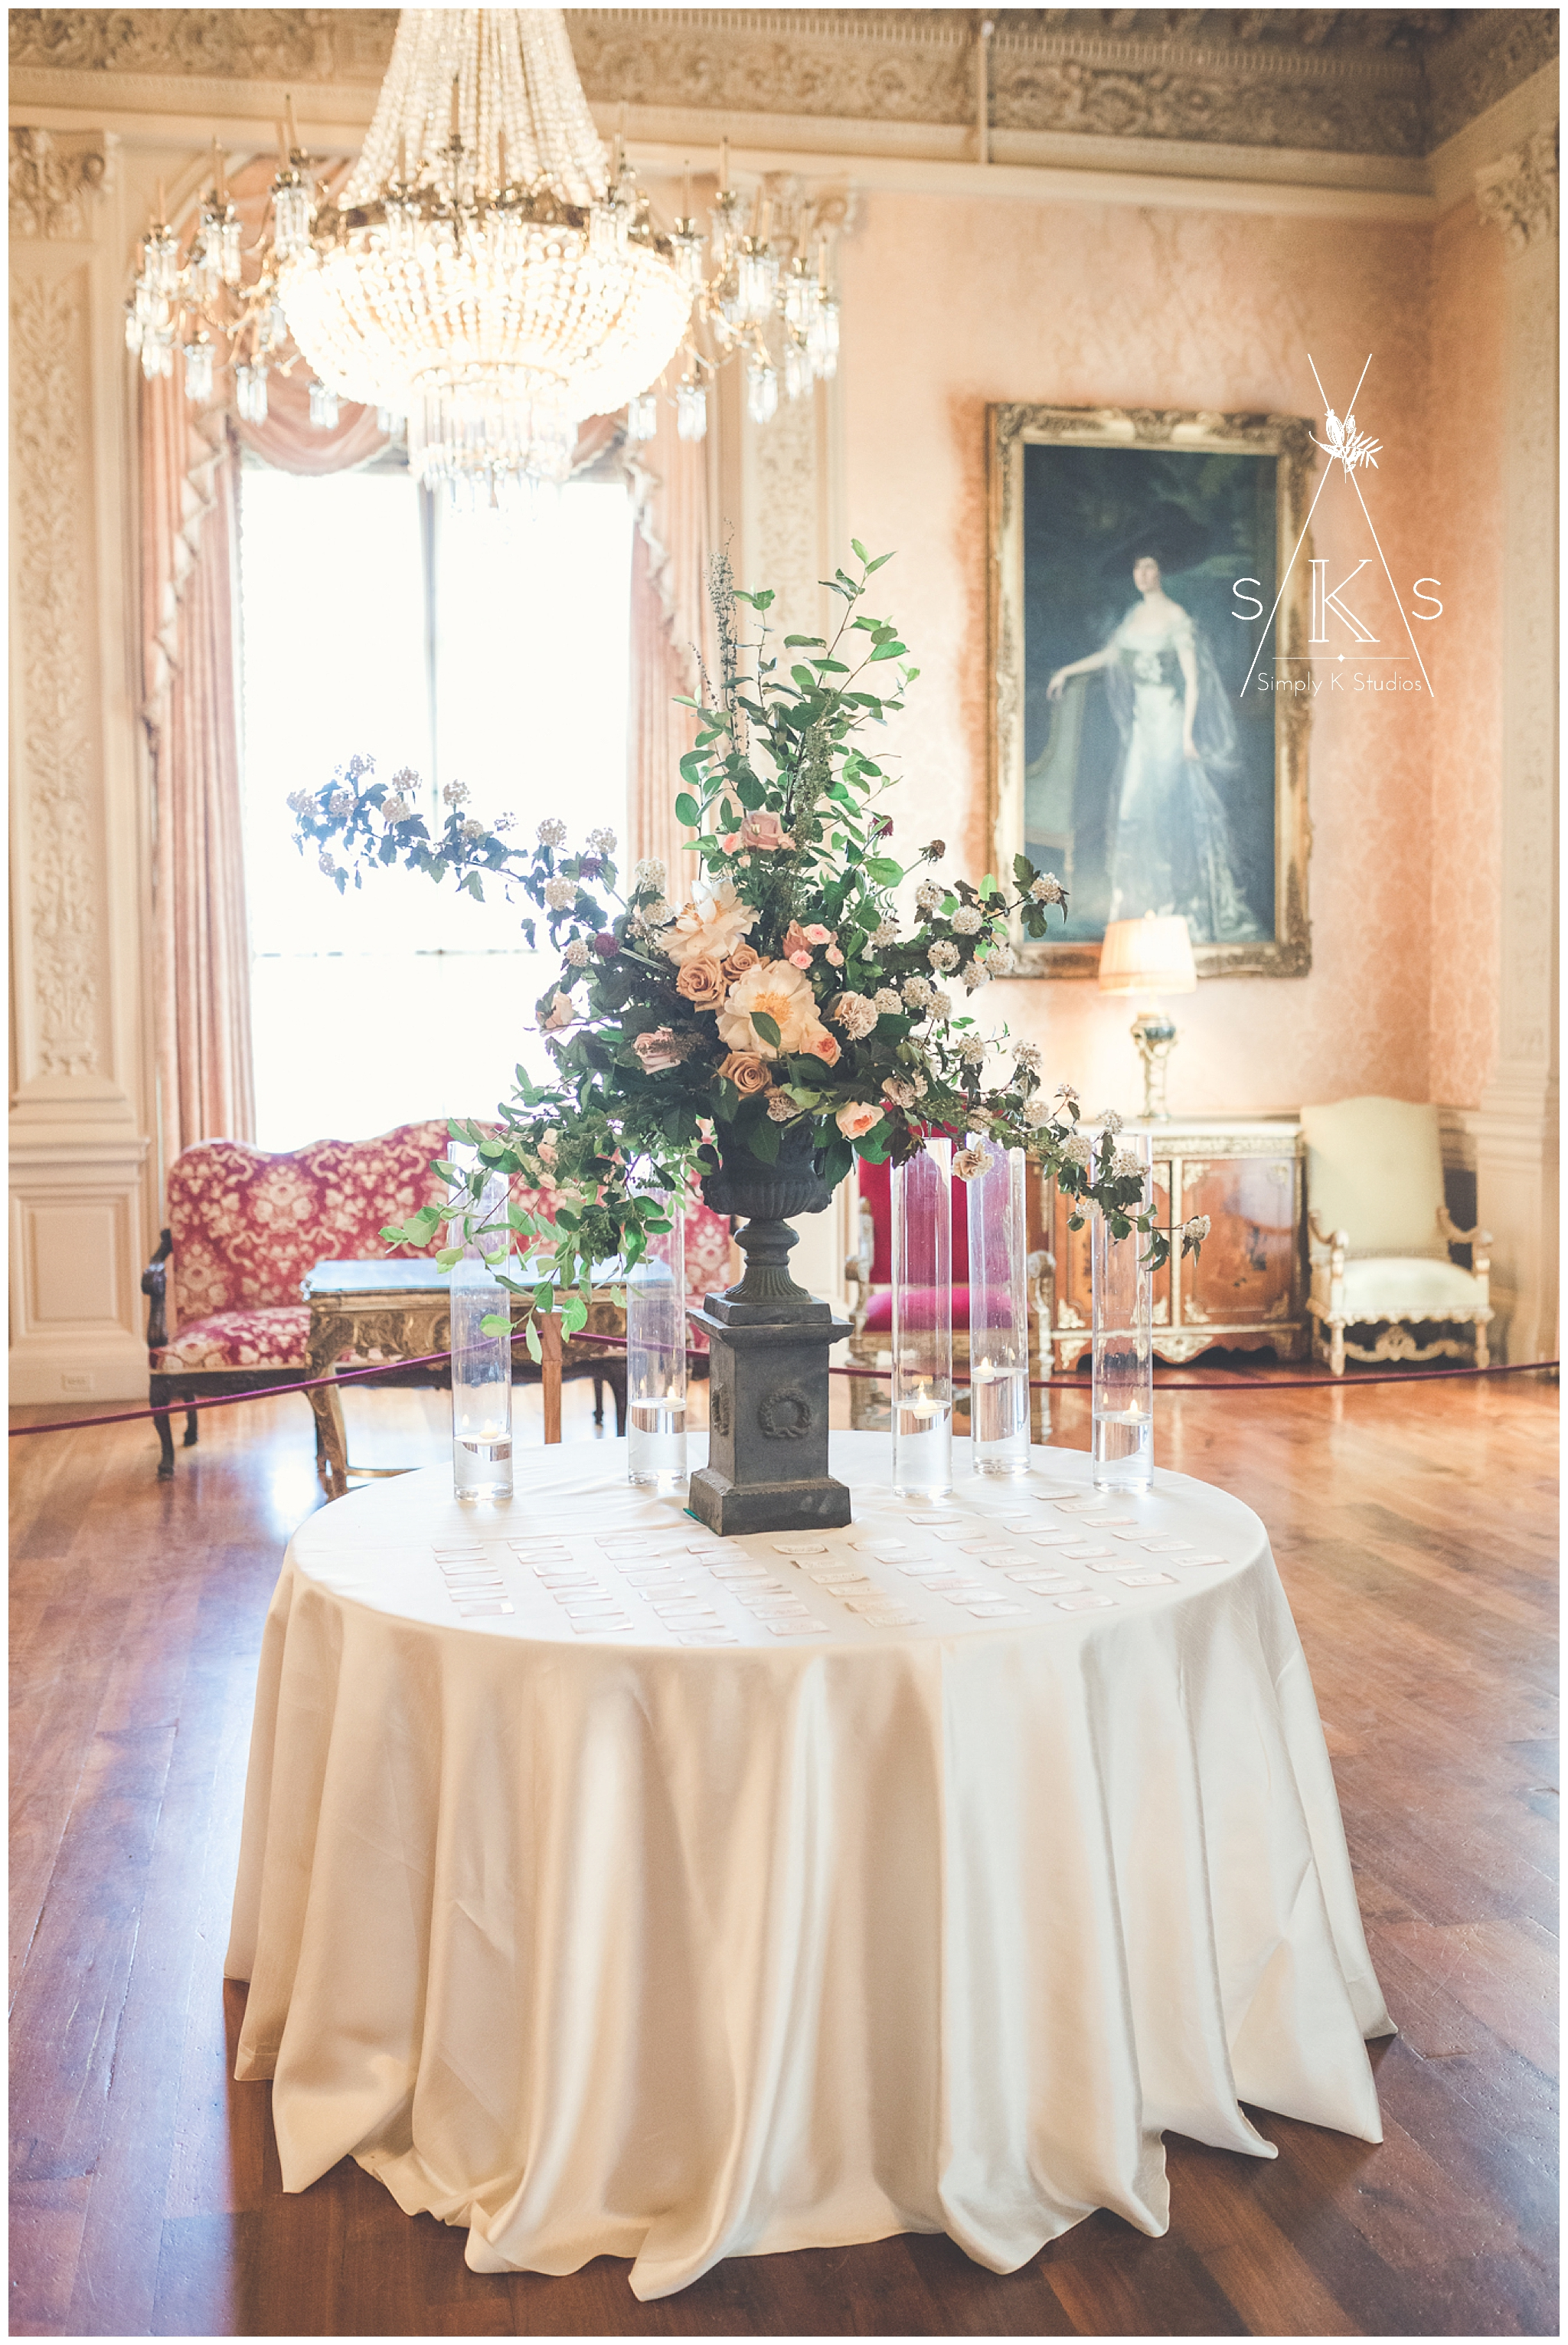 Florist Design at Rosecliff Mansion